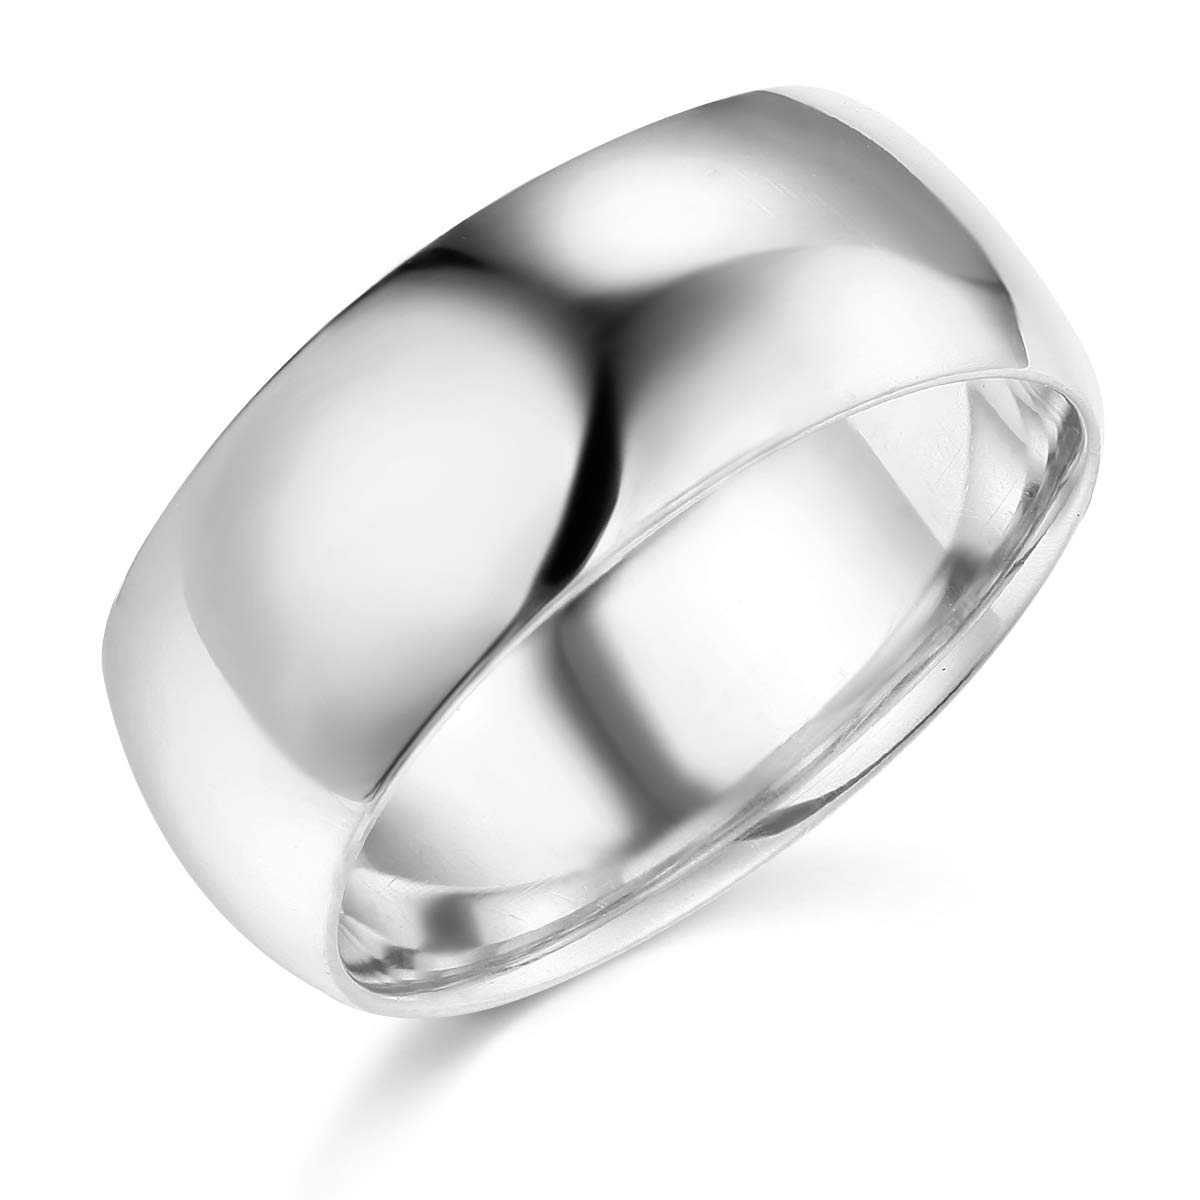 Wellingsale Mens 14k White Gold Solid 8mm CLASSIC FIT Traditional Wedding Band Ring - Size 9.5 by Wellingsale